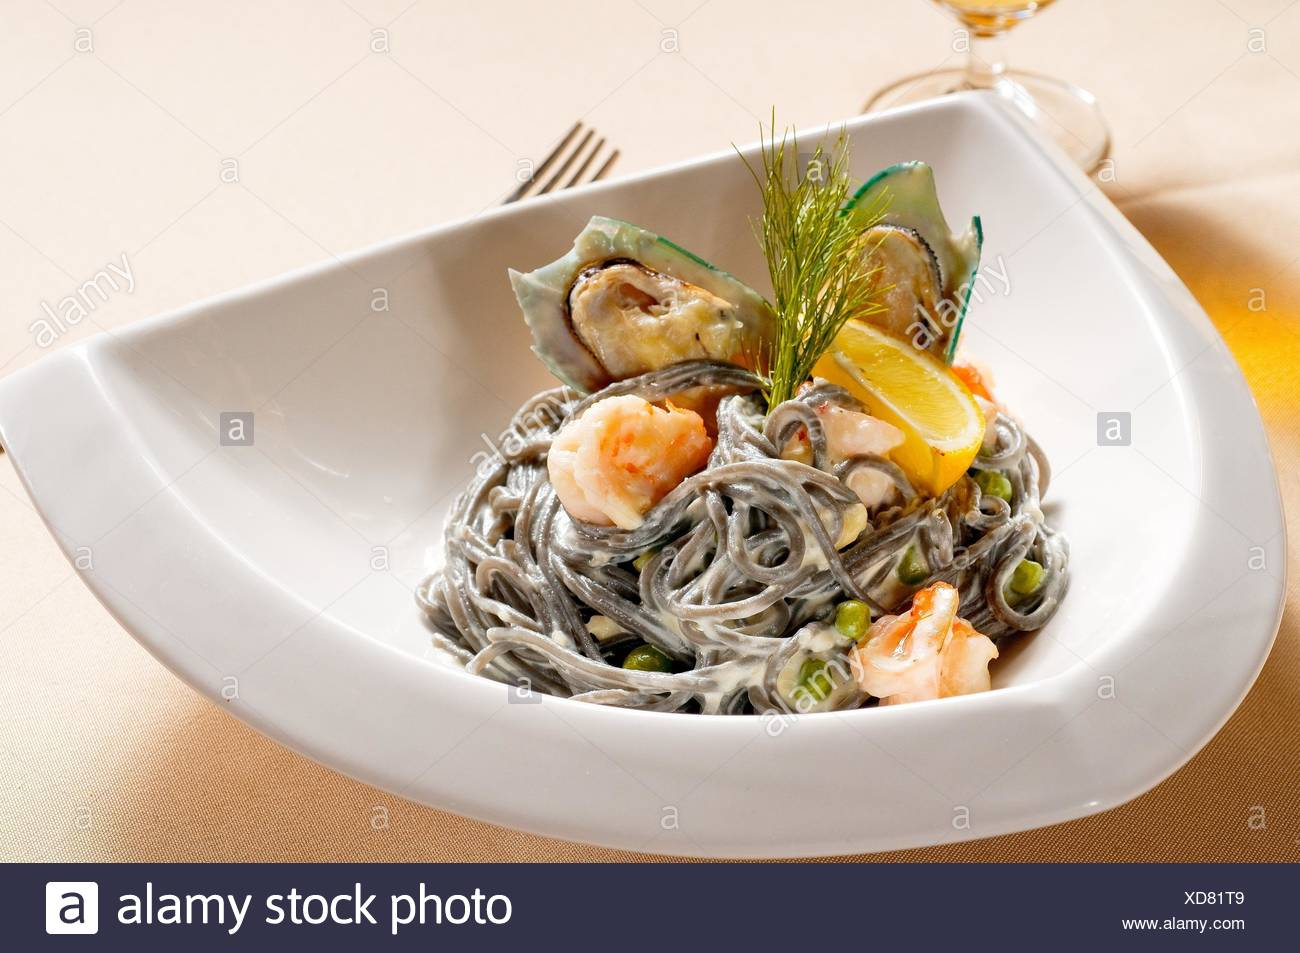 fresh seafood black squid ink coulored spaghetti pasta tipycal italian food. - Stock Image